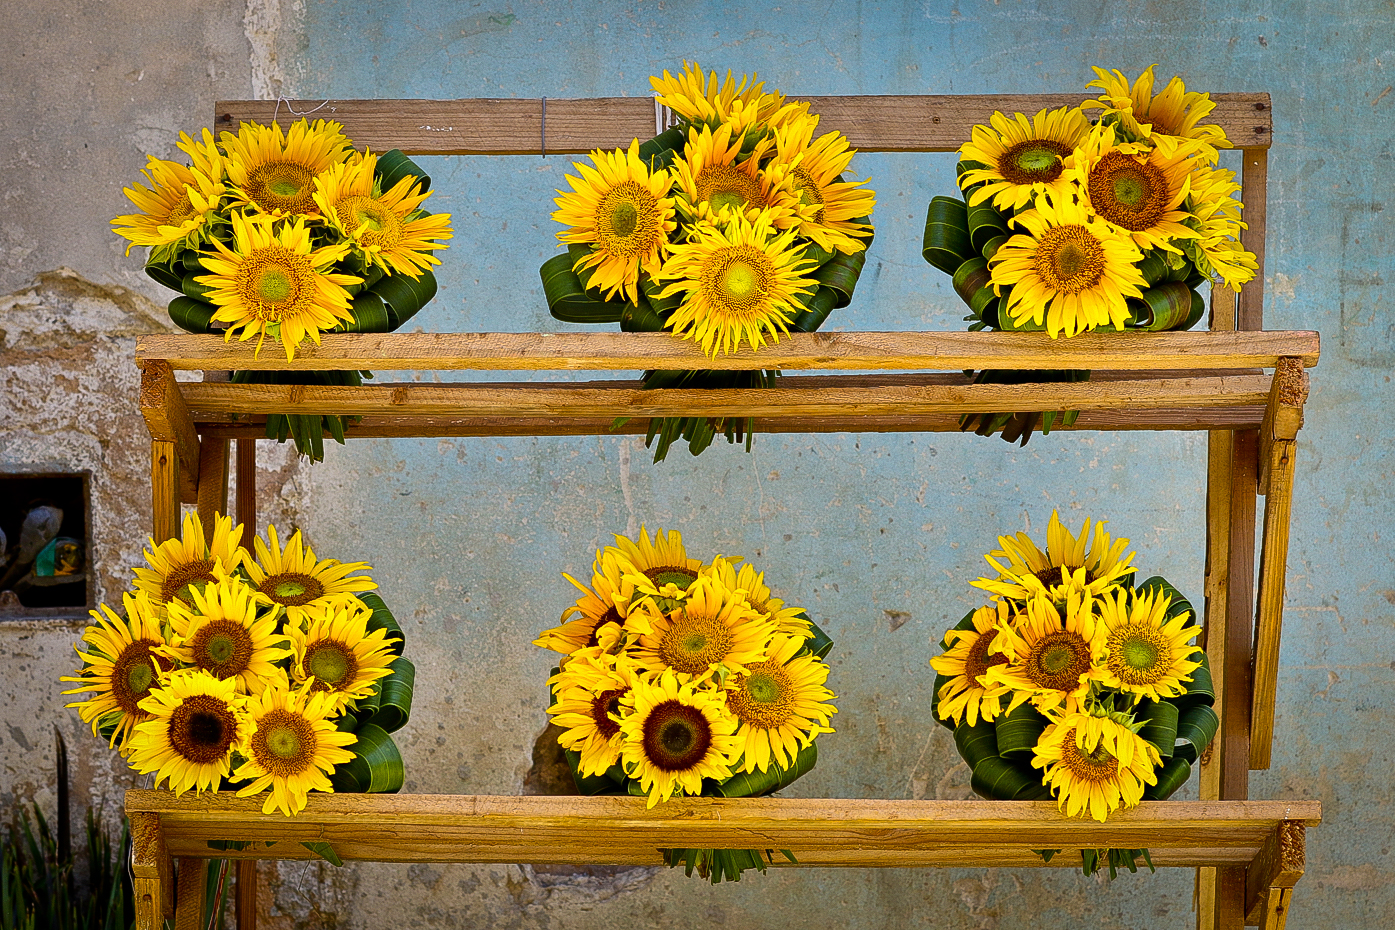 Sunflowers for sale.......